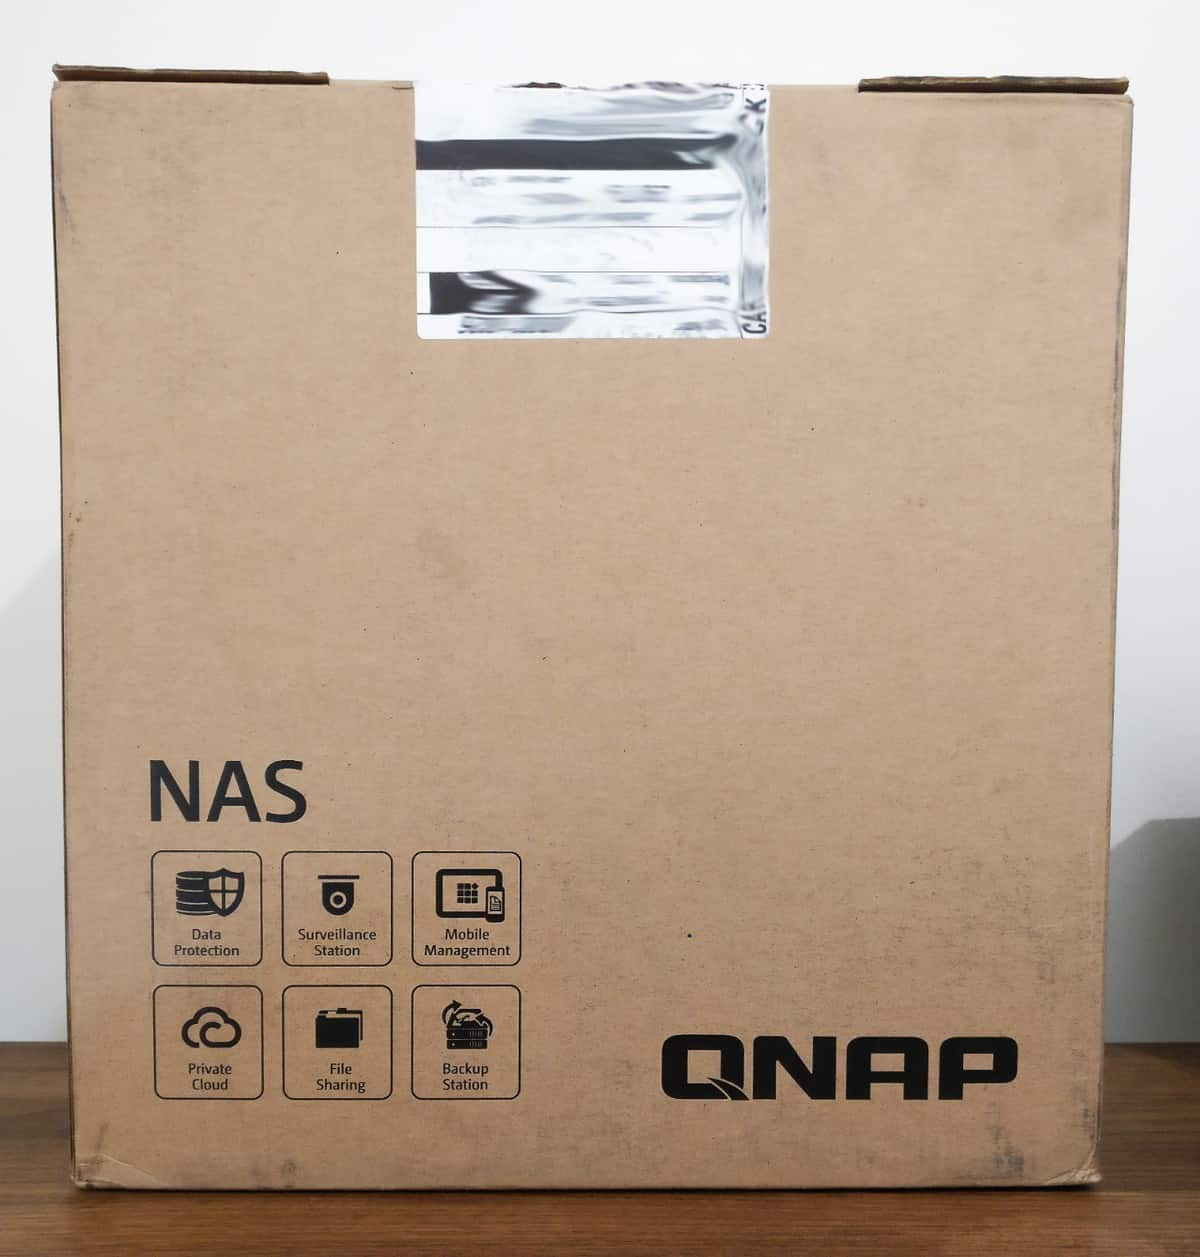 QNAP TS-453BT3 4 Bay NAS Review - The Streaming Blog